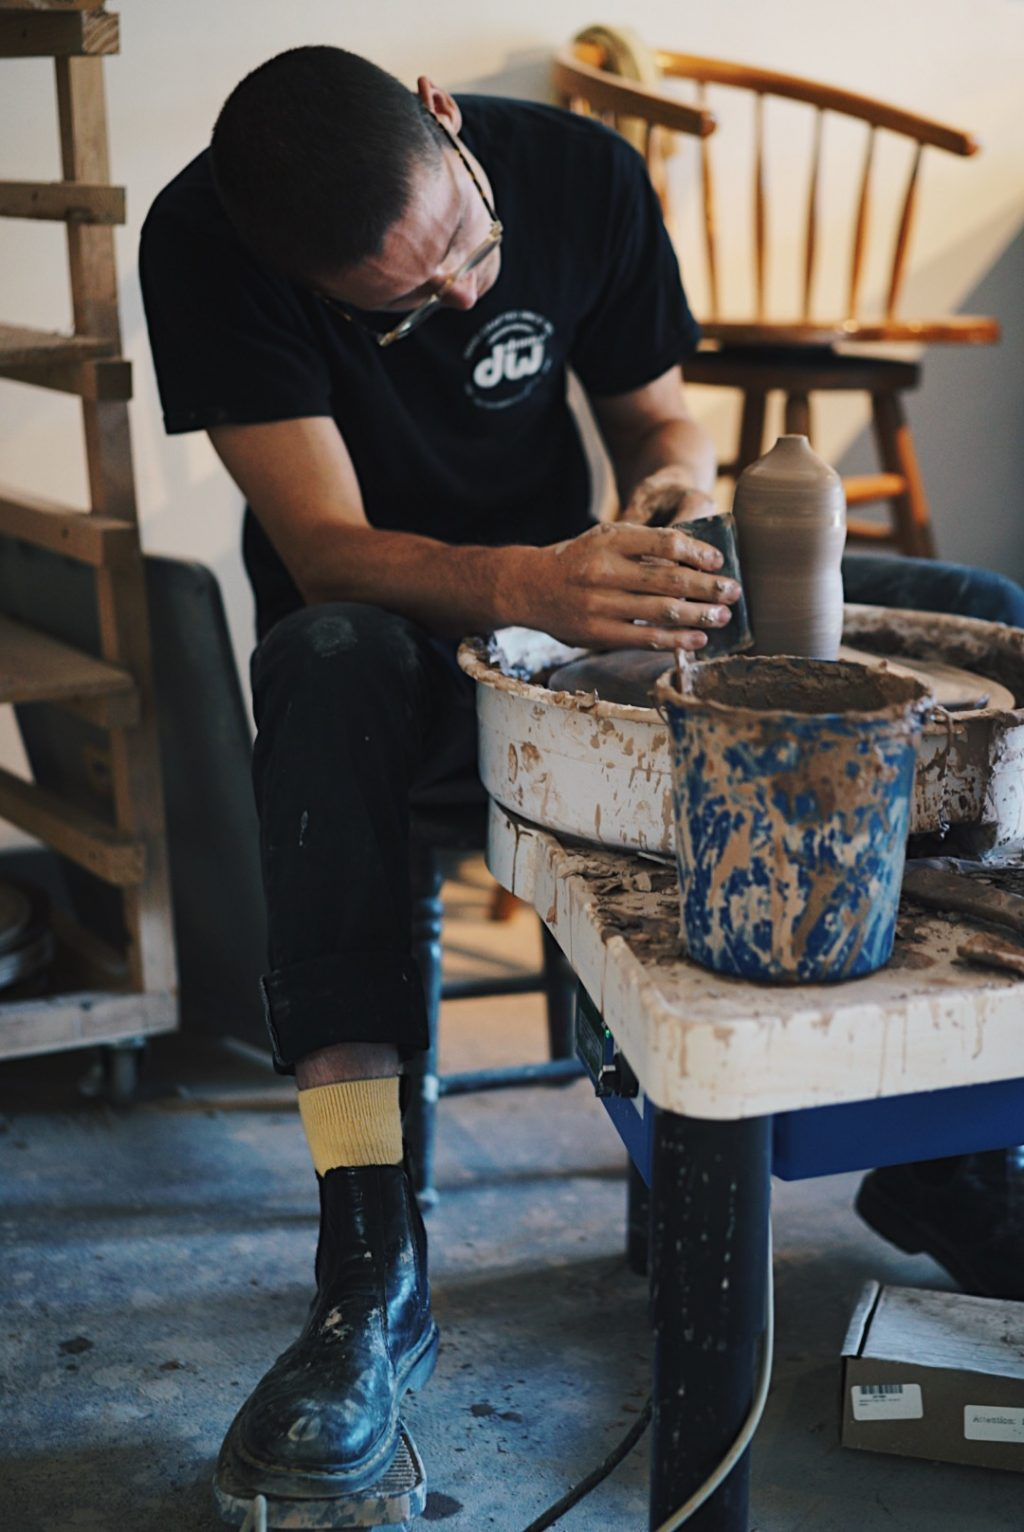 MAEK creating ceramics, 2019 small business gift guide blog post from Fatima Elreda Photo, image by Maek